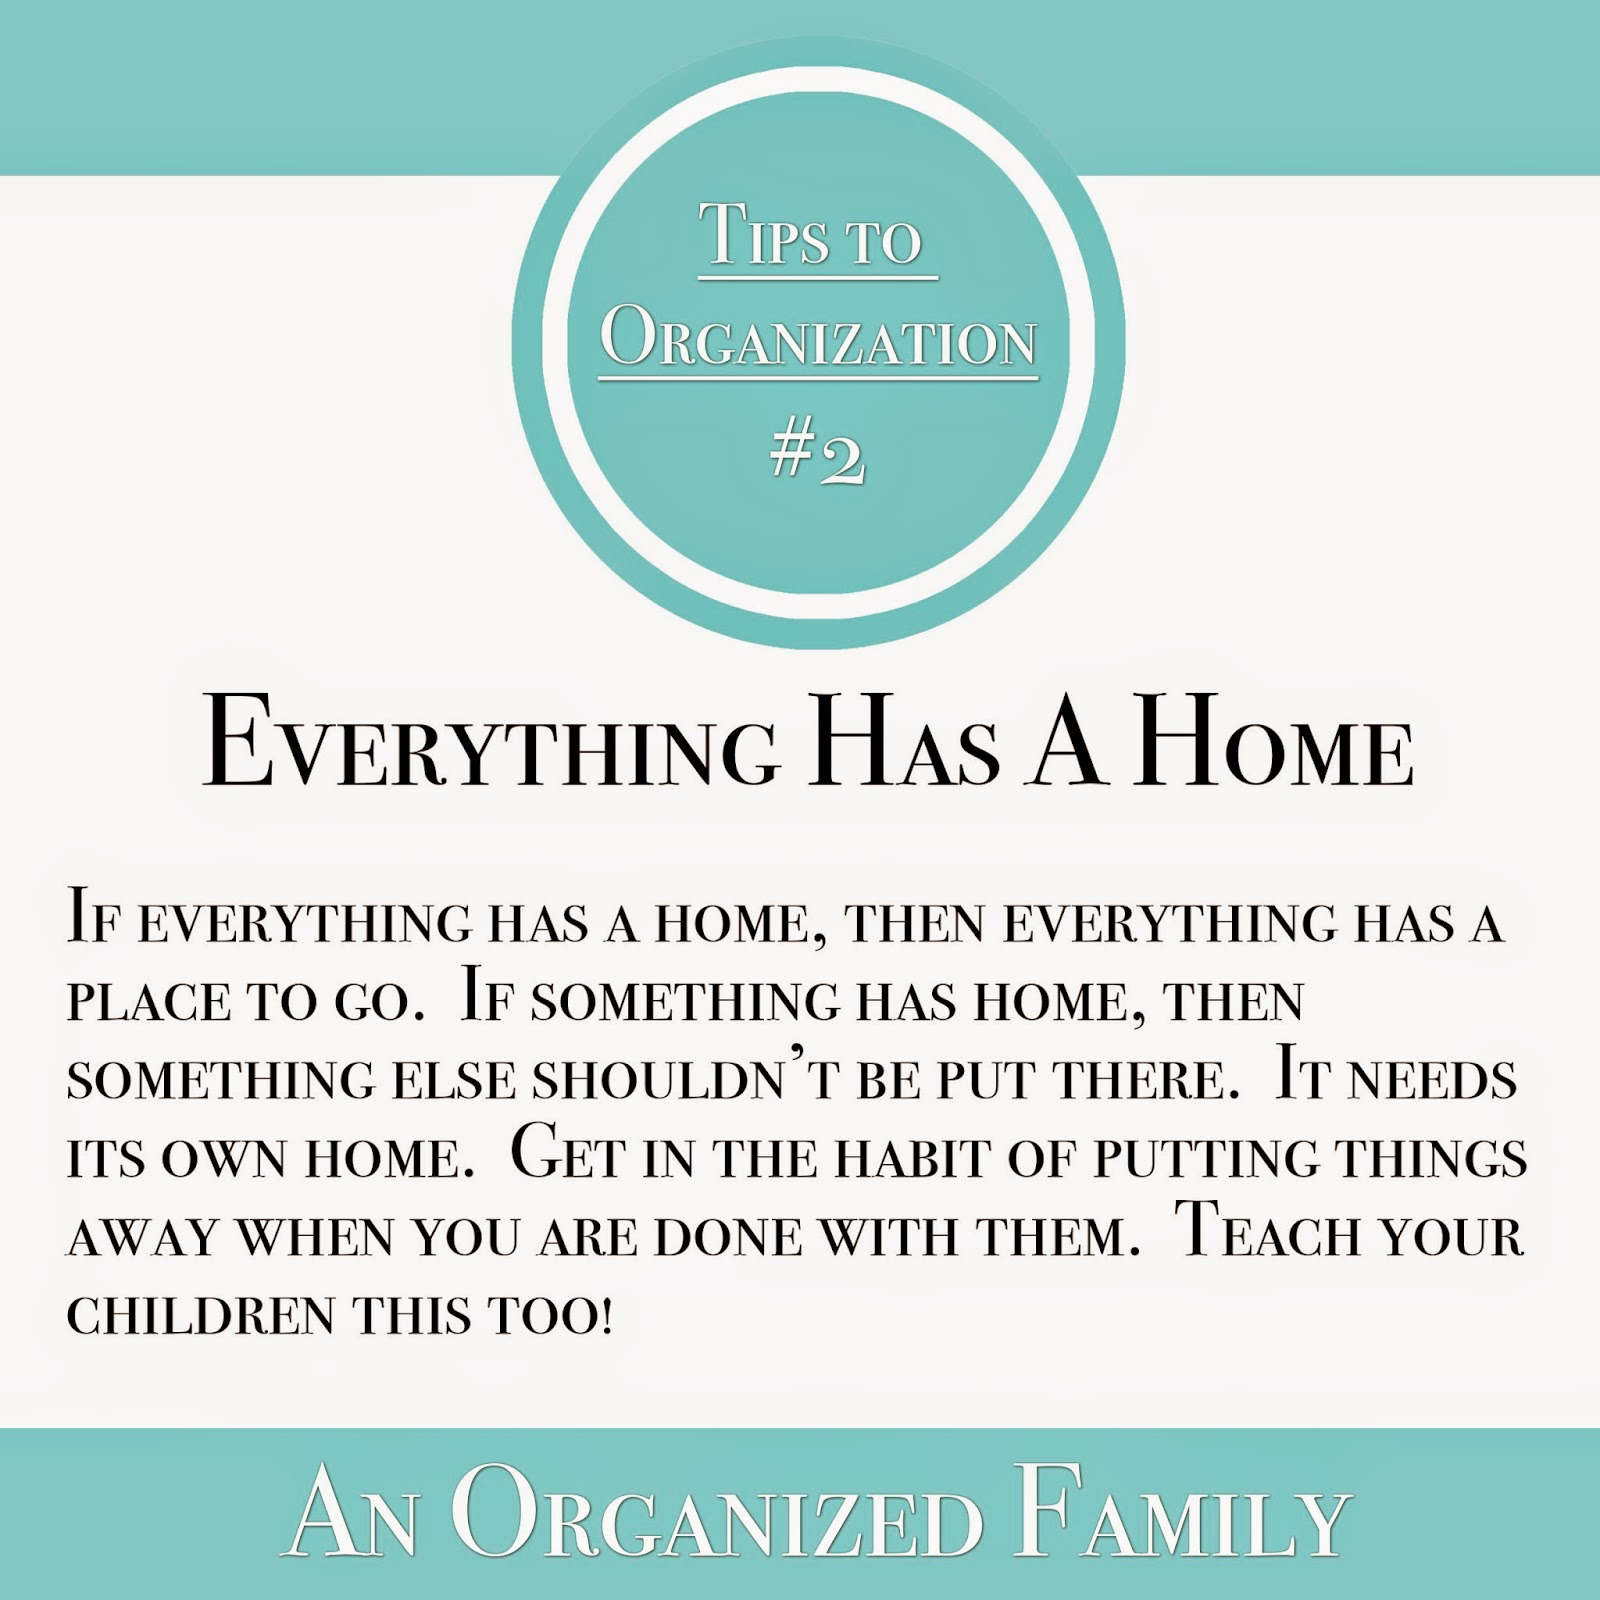 Tips to Organization - Everything Has A Home